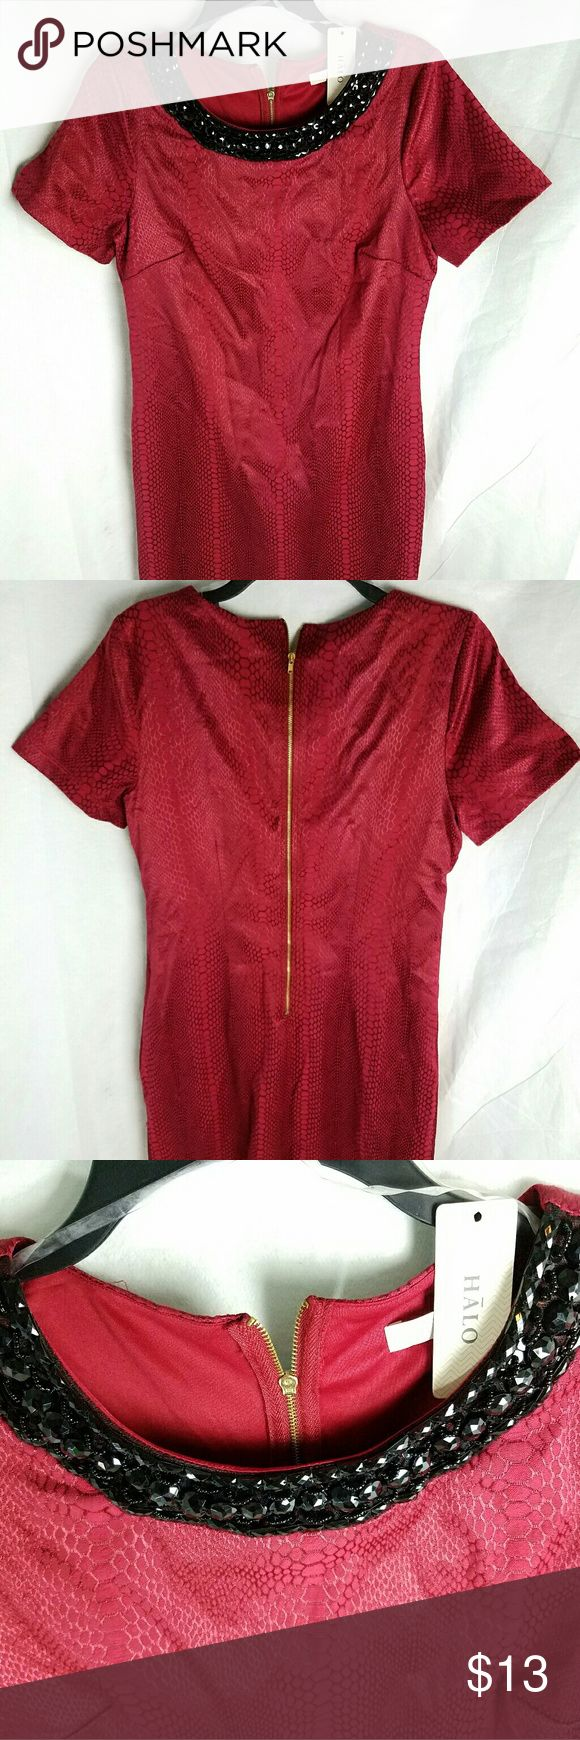 Halo red dress with bead and gemstones Brand new halo red dress size l with beads and gem stonwe neckline Halo Dresses